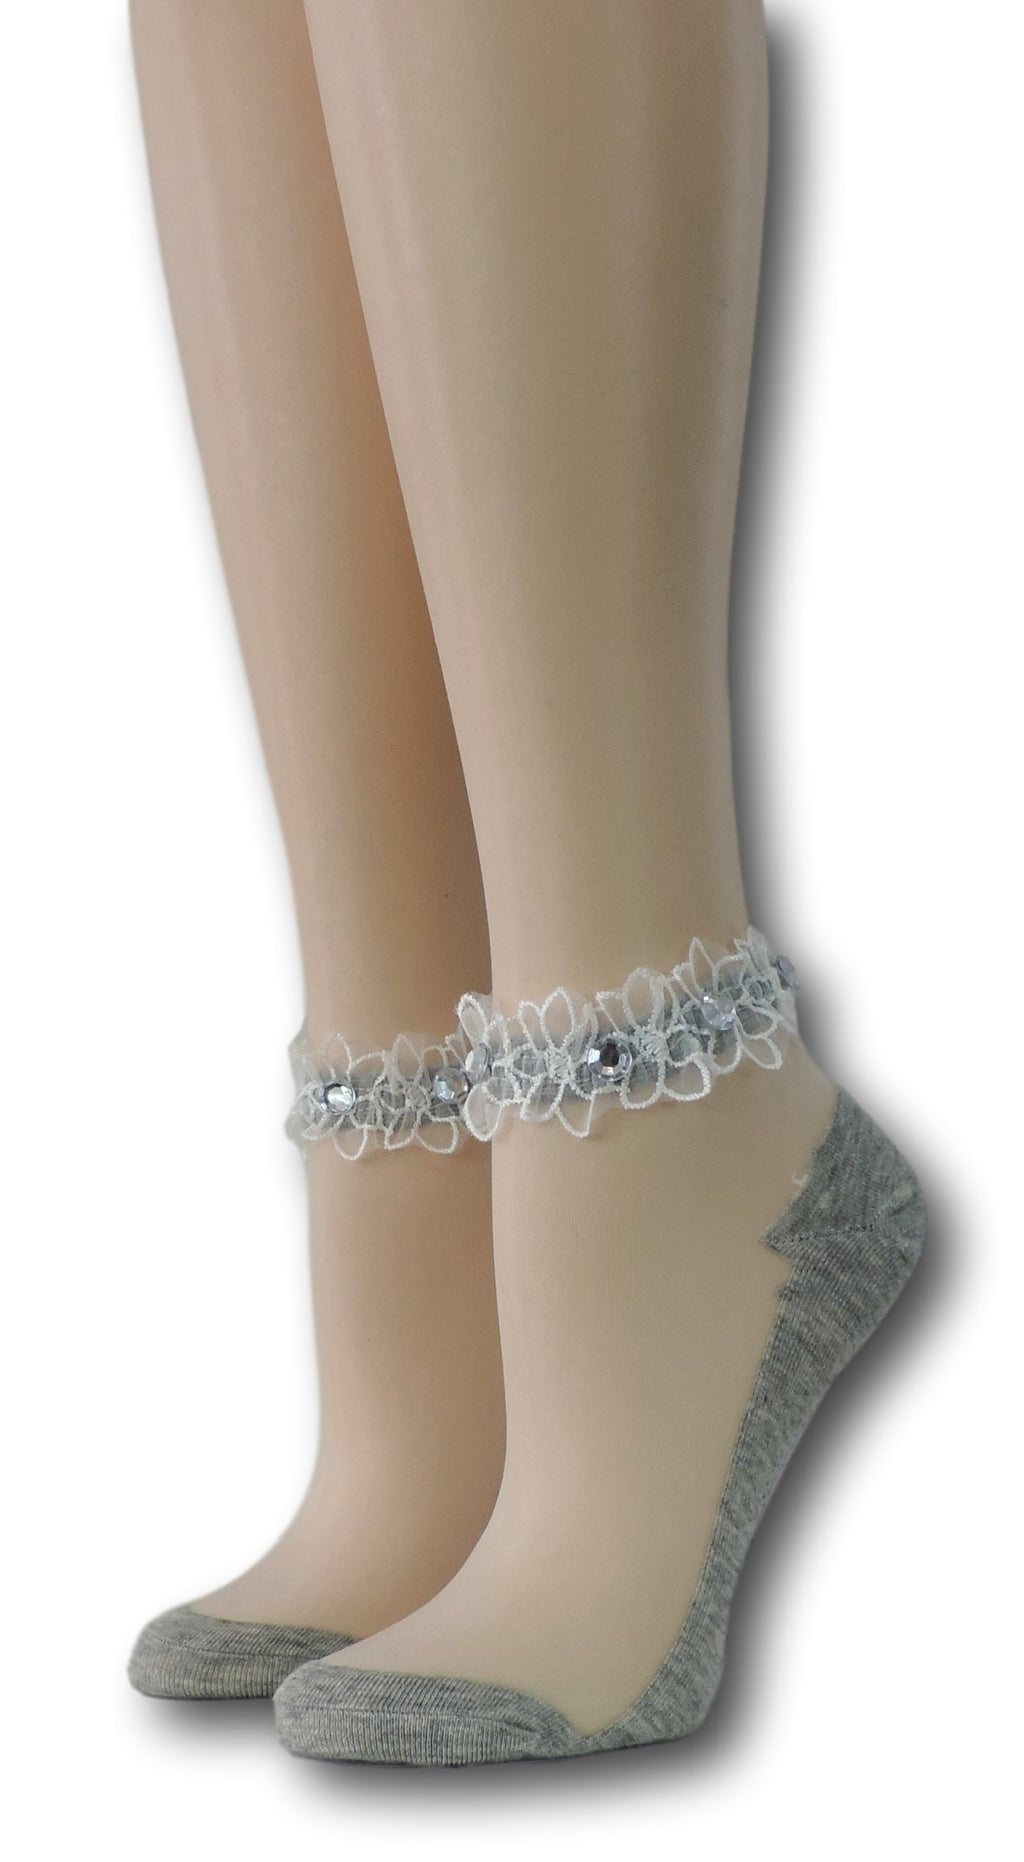 Thick Grey Ankle Sheer Socks with beads